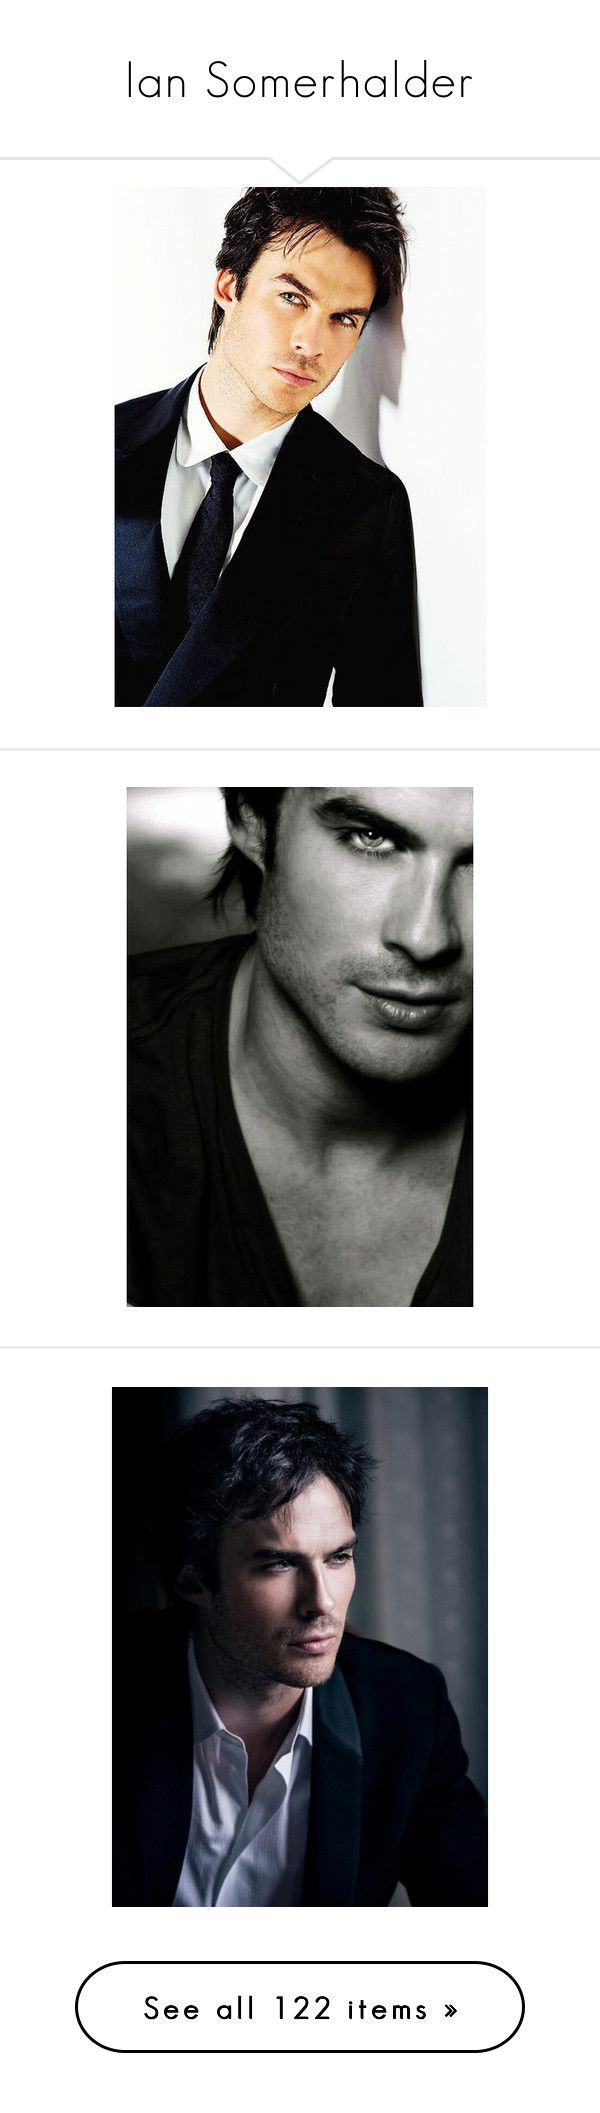 """""""Ian Somerhalder"""" by artemisa-538 ❤ liked on Polyvore featuring ian somerhalder, backgrounds, men, people, the vampire diaries, vampire diaries, pictures, boys, guys and pics"""